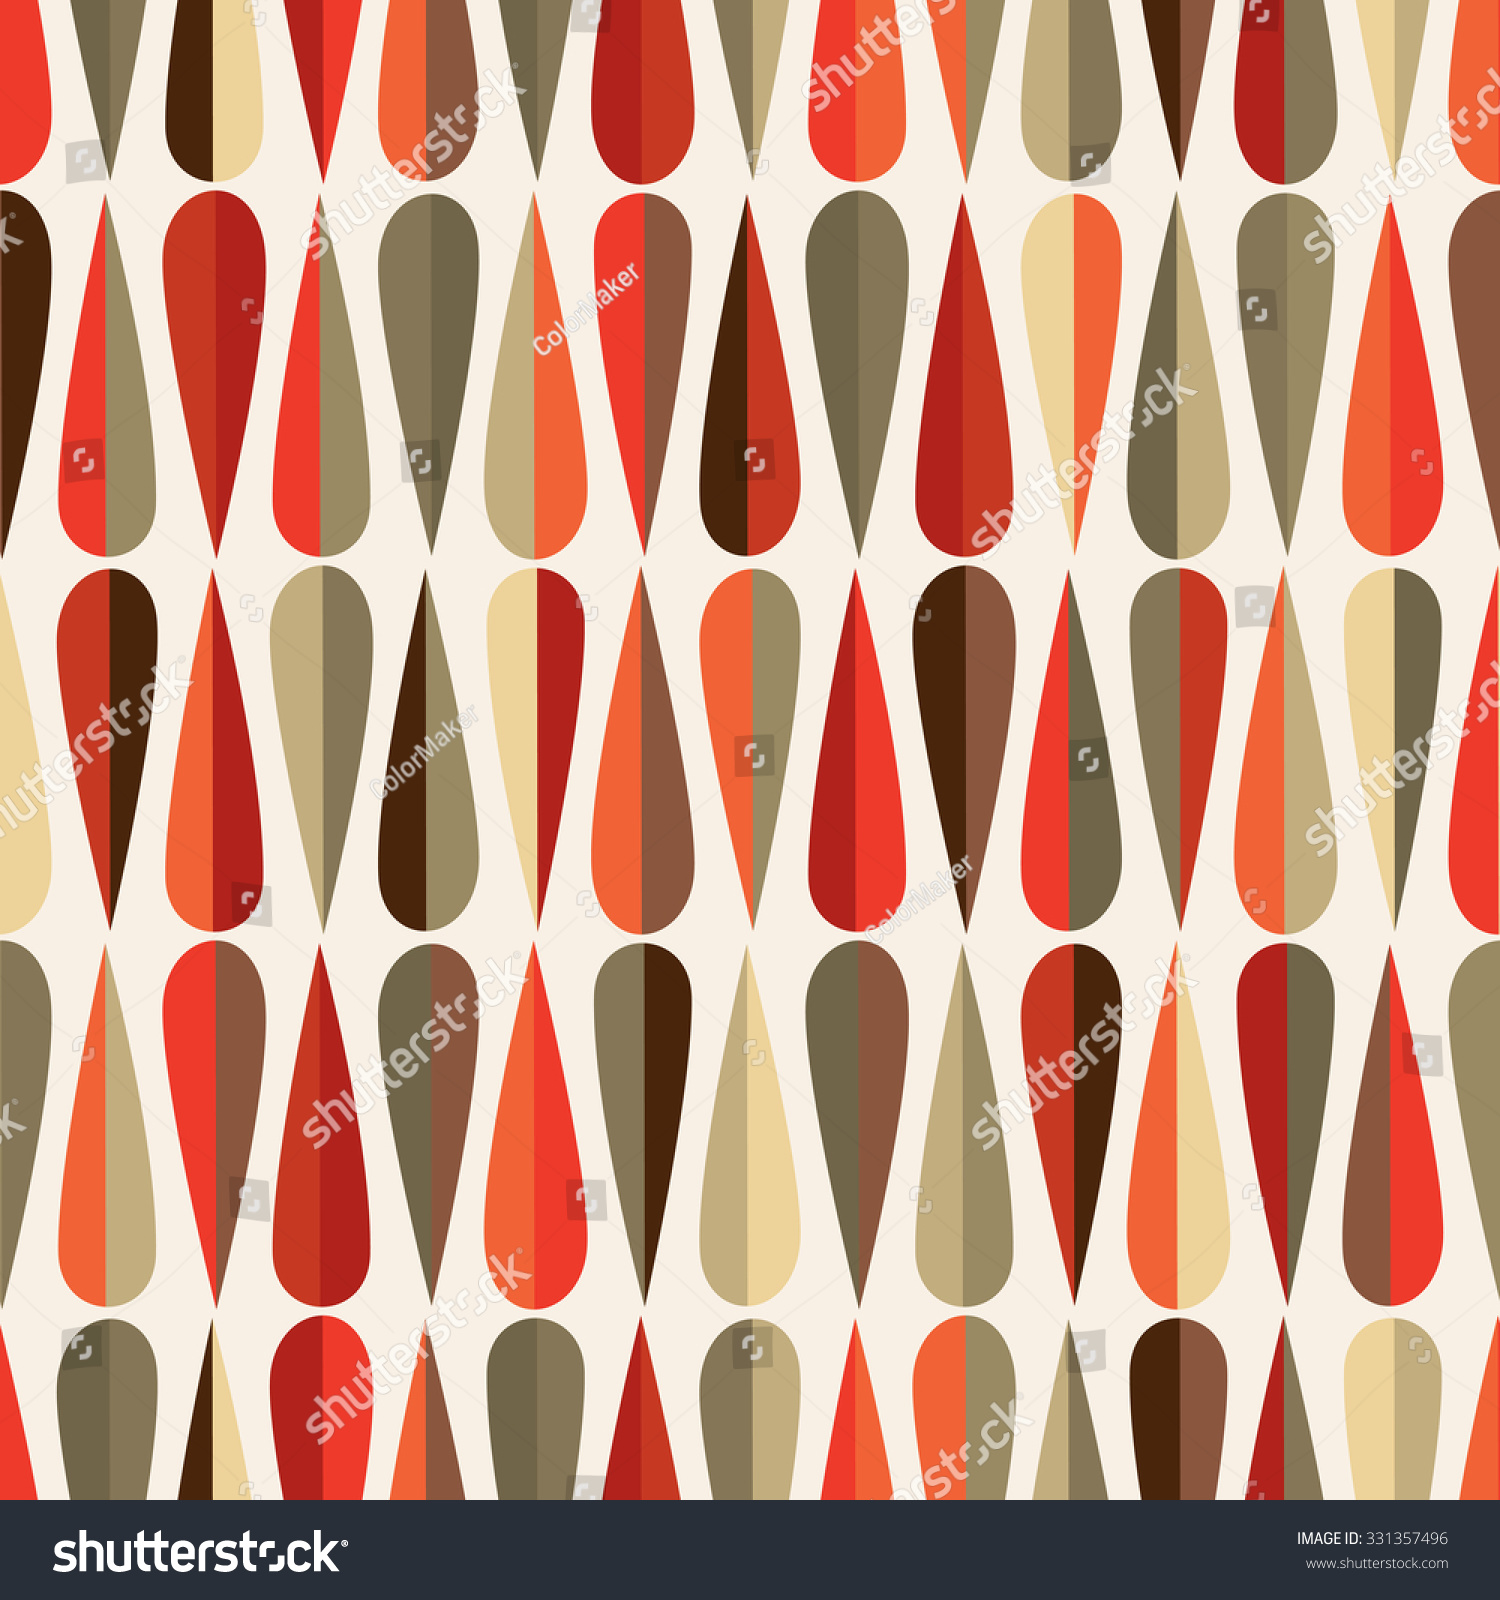 mid century modern style retro seamless pattern with drop shapes in various color tones. Black Bedroom Furniture Sets. Home Design Ideas